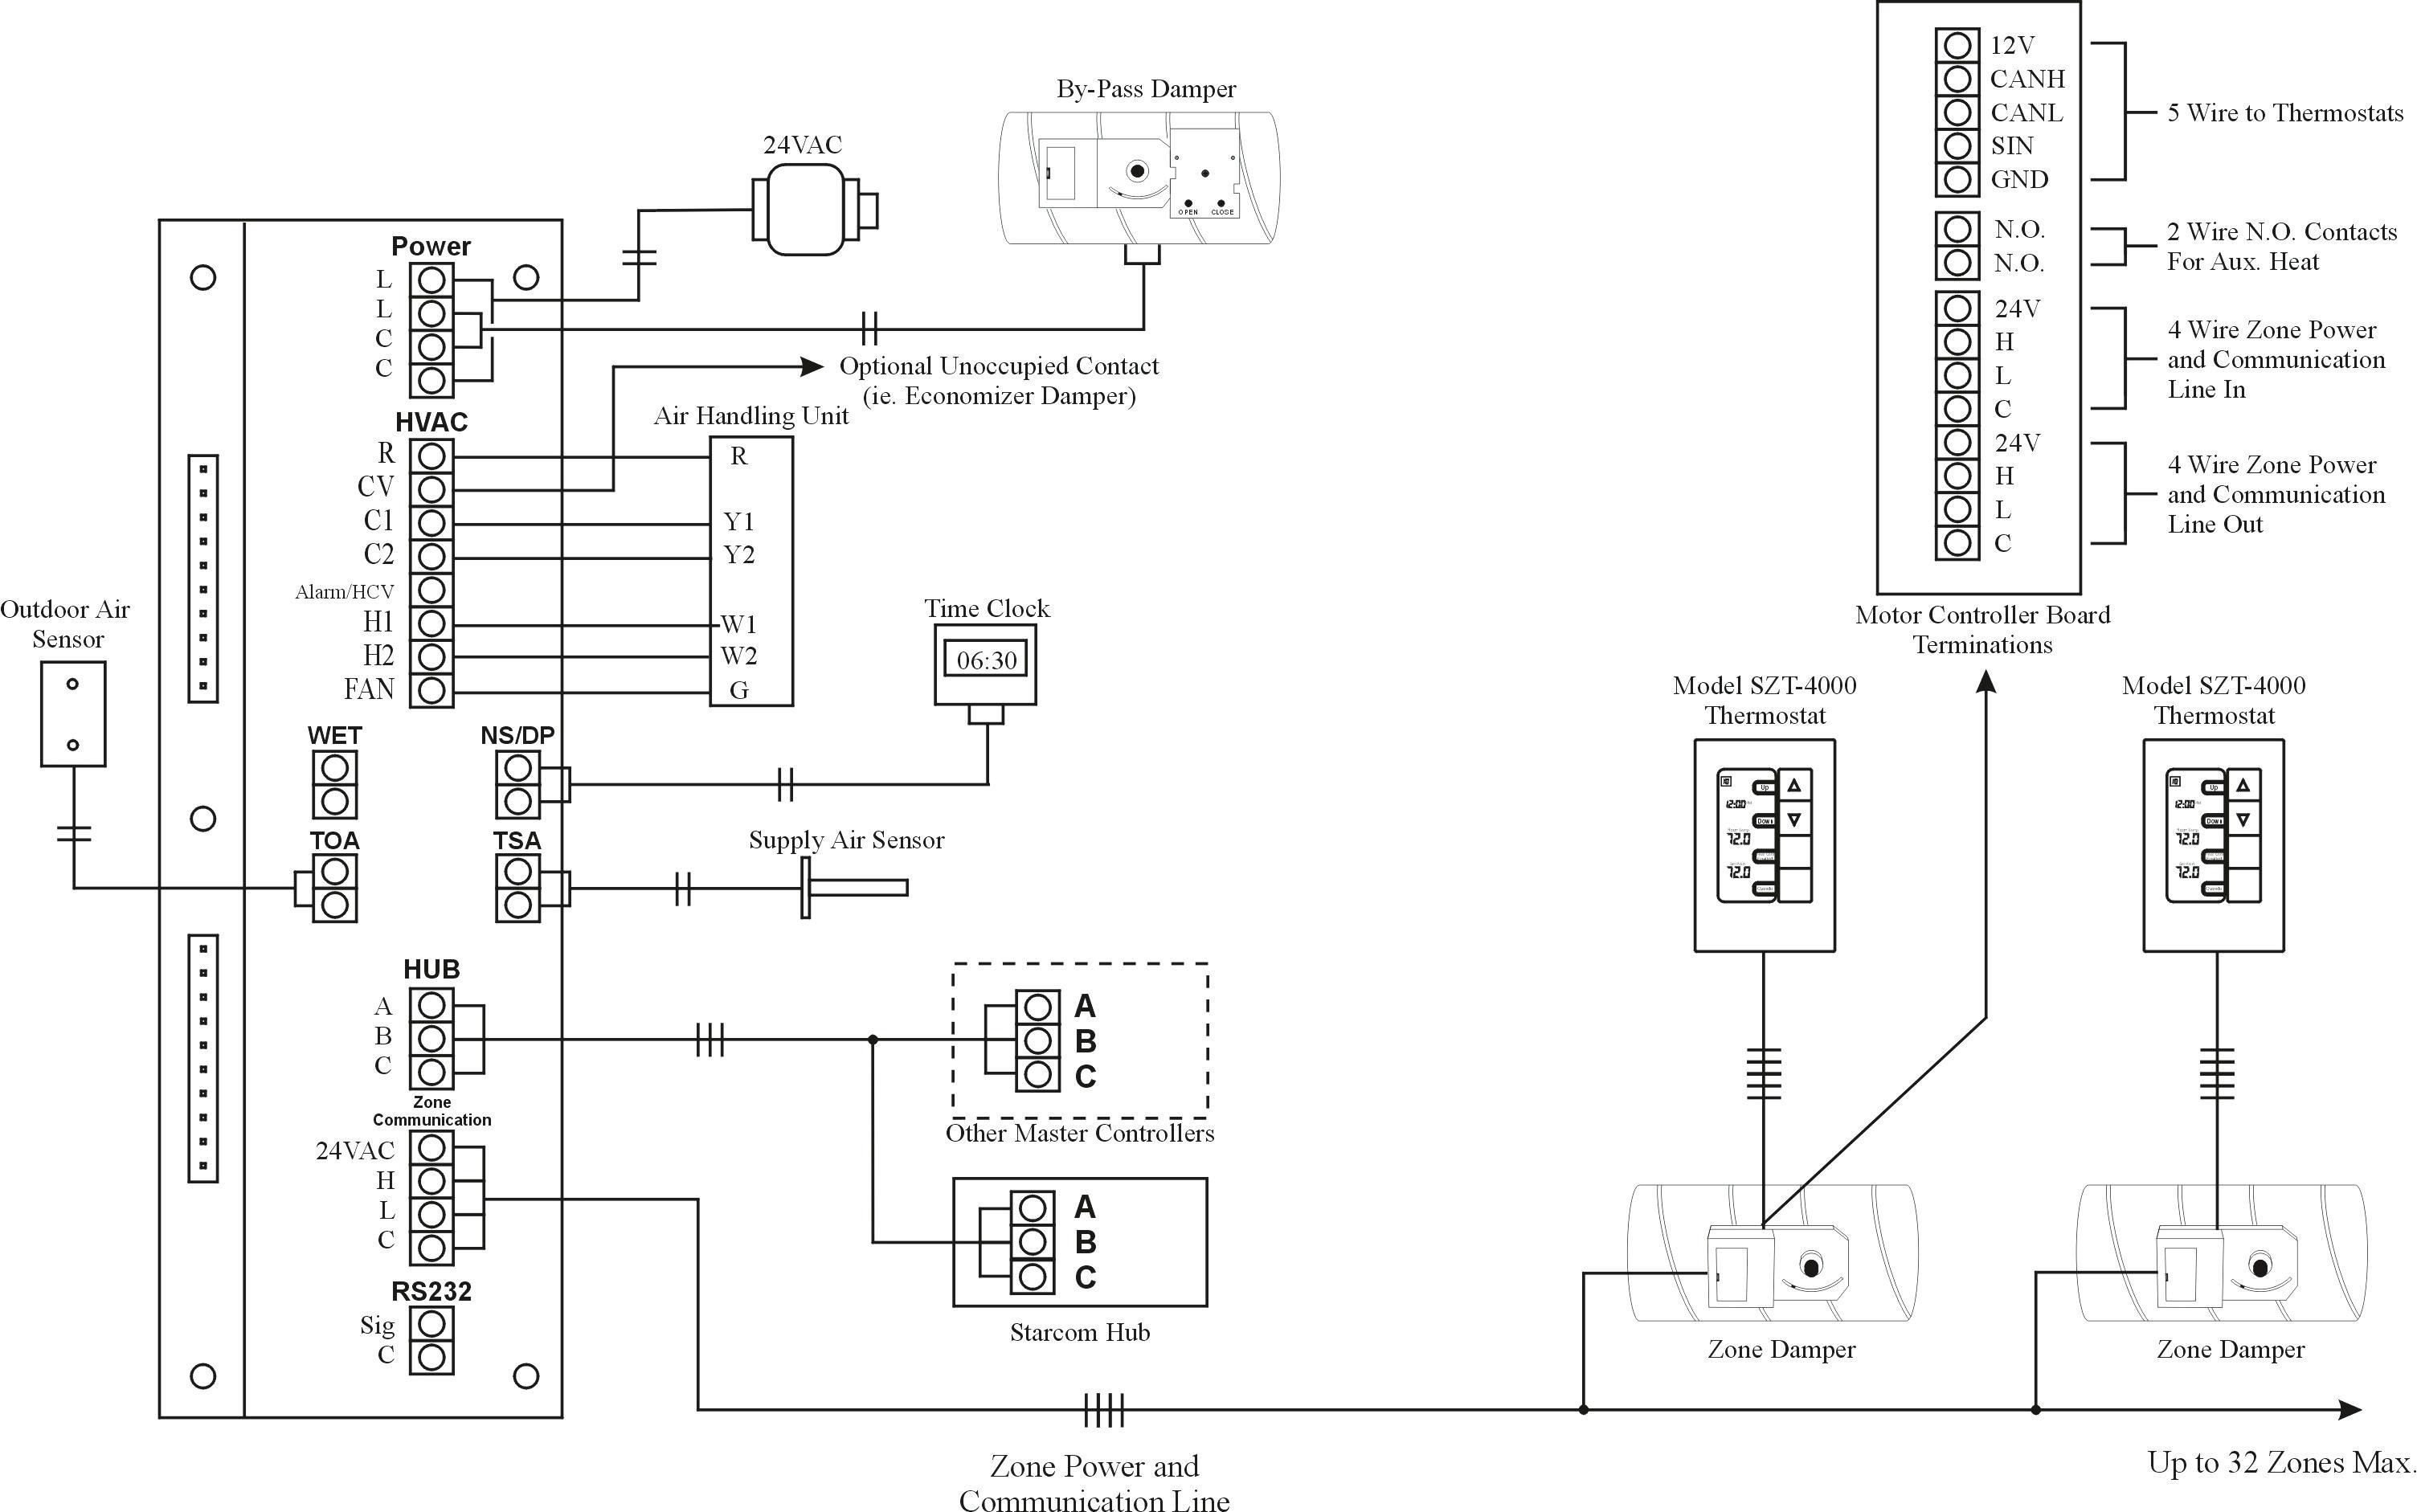 Goodman Pump Heat Diagram Wiring Gph H21ac